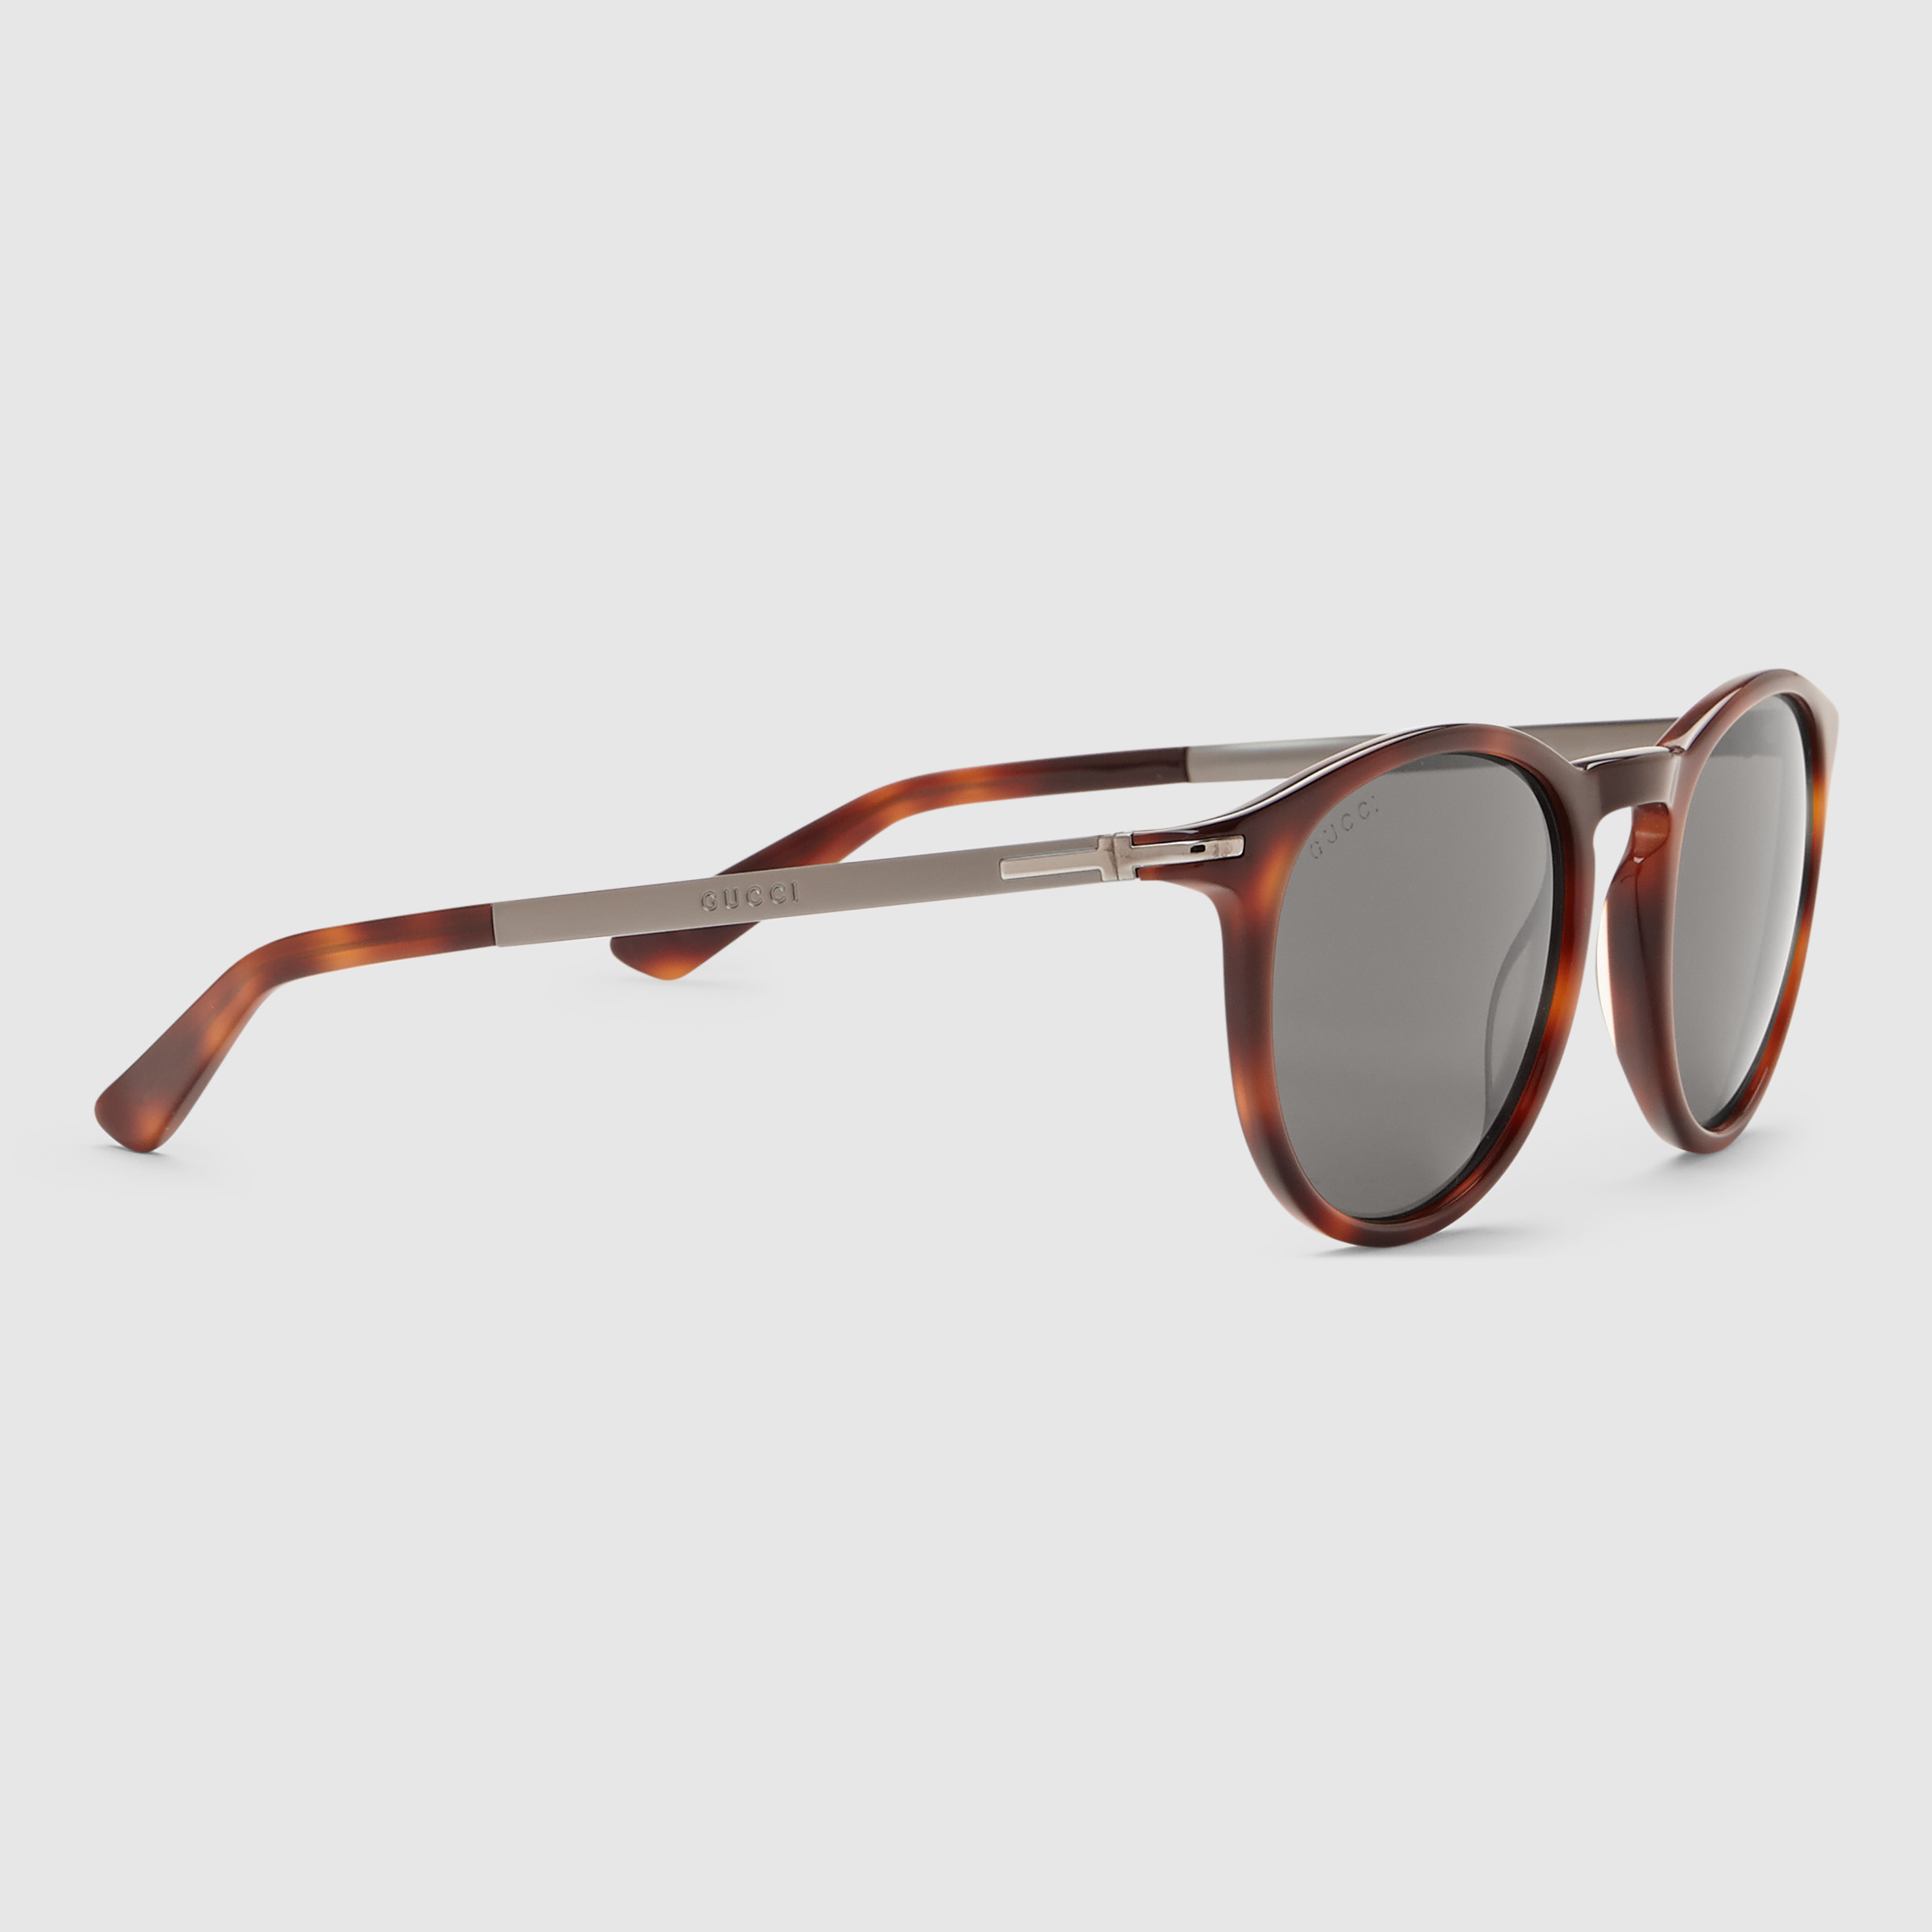 1cee23964f8 Gucci Round Tortoise Shell Sunglasses - Bitterroot Public Library